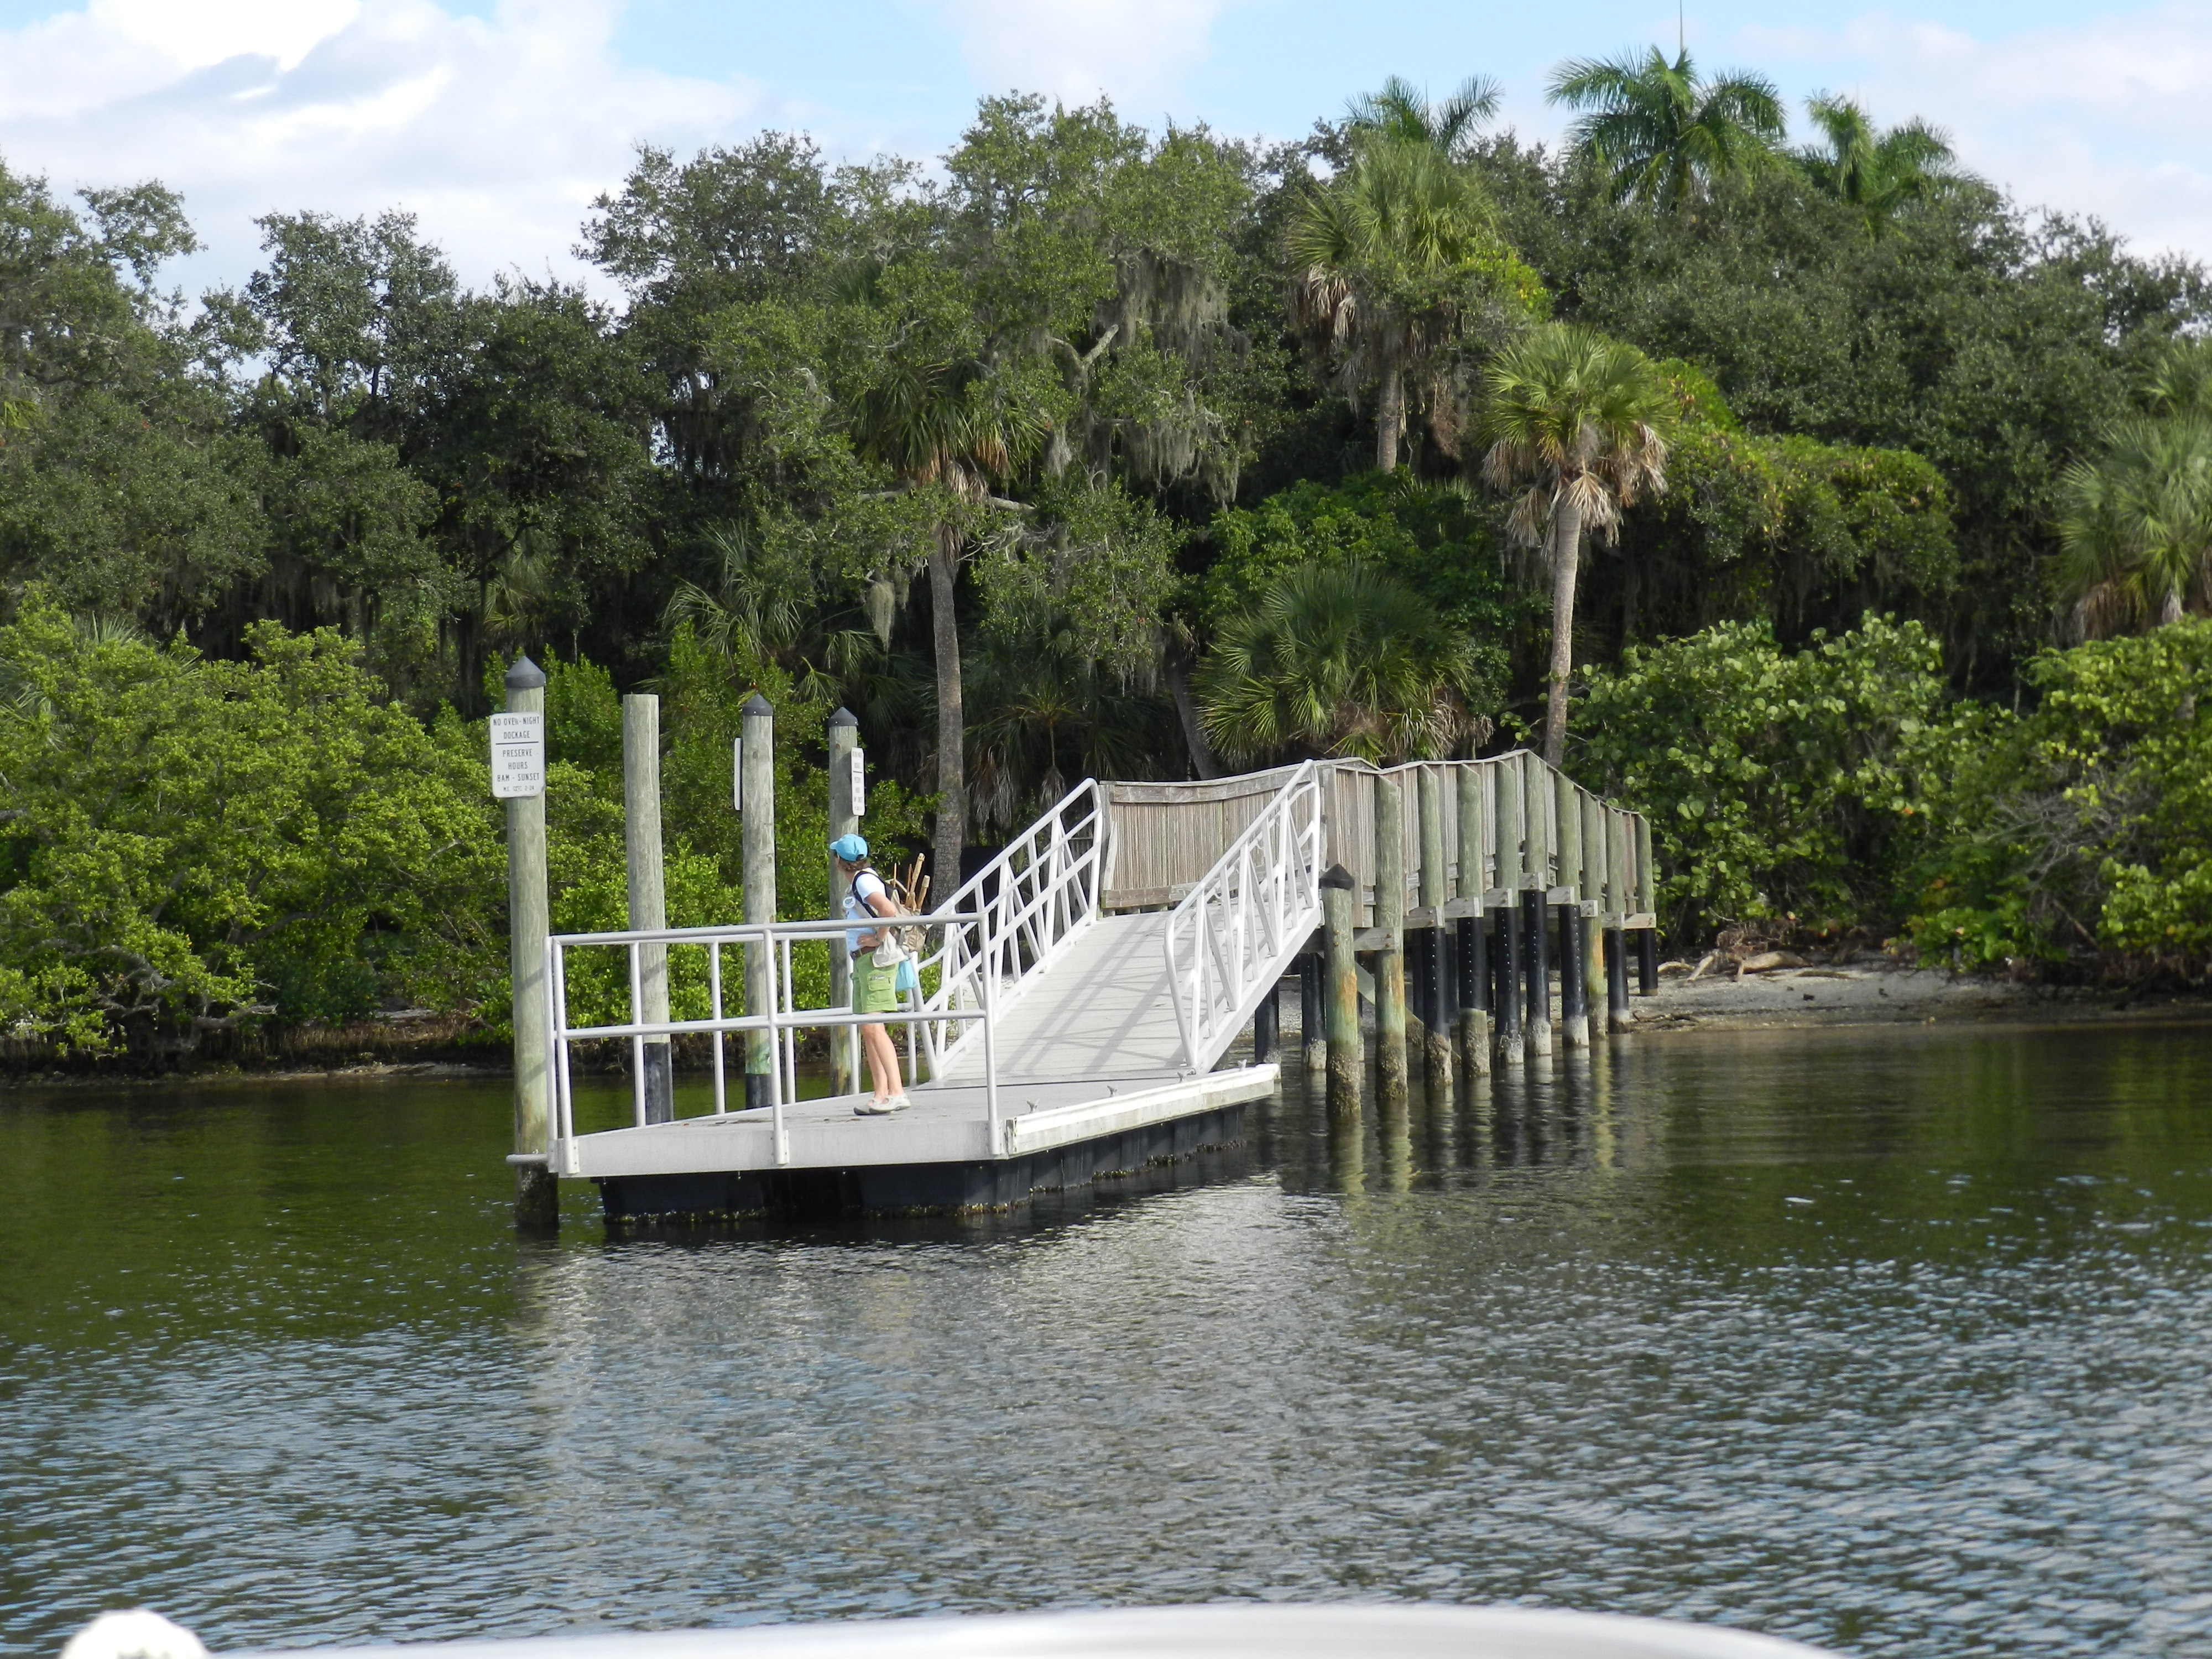 Entrance to Emerson Point Preserve